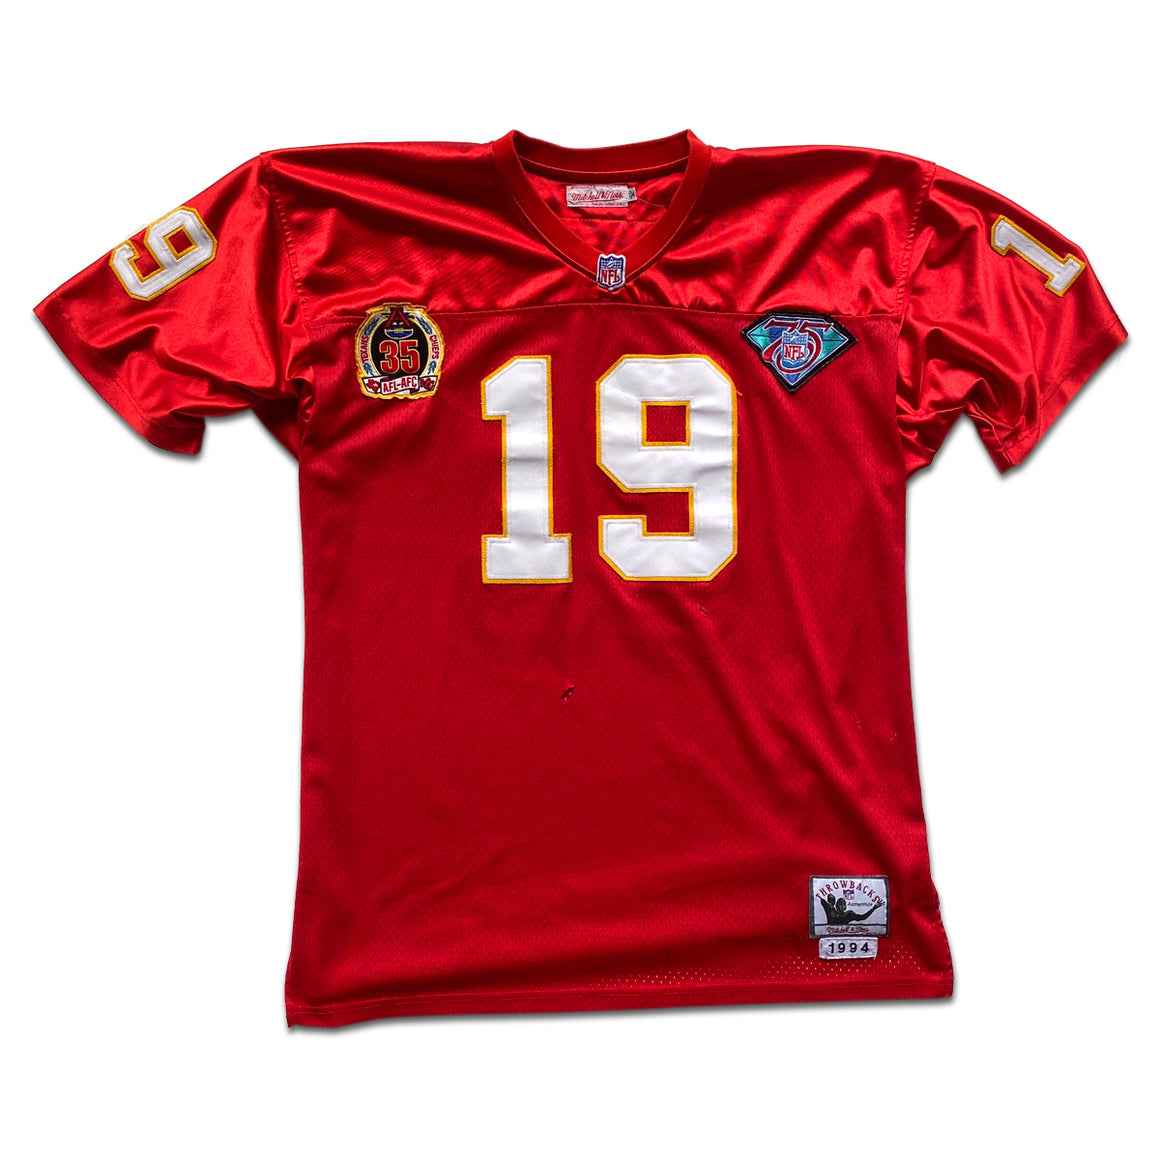 WESTSIDE STOREY VINTAGE | MITCHELL & NESS KC CHIEFS JOE MONTANA 75TH ANNIVERSARY JERSEY